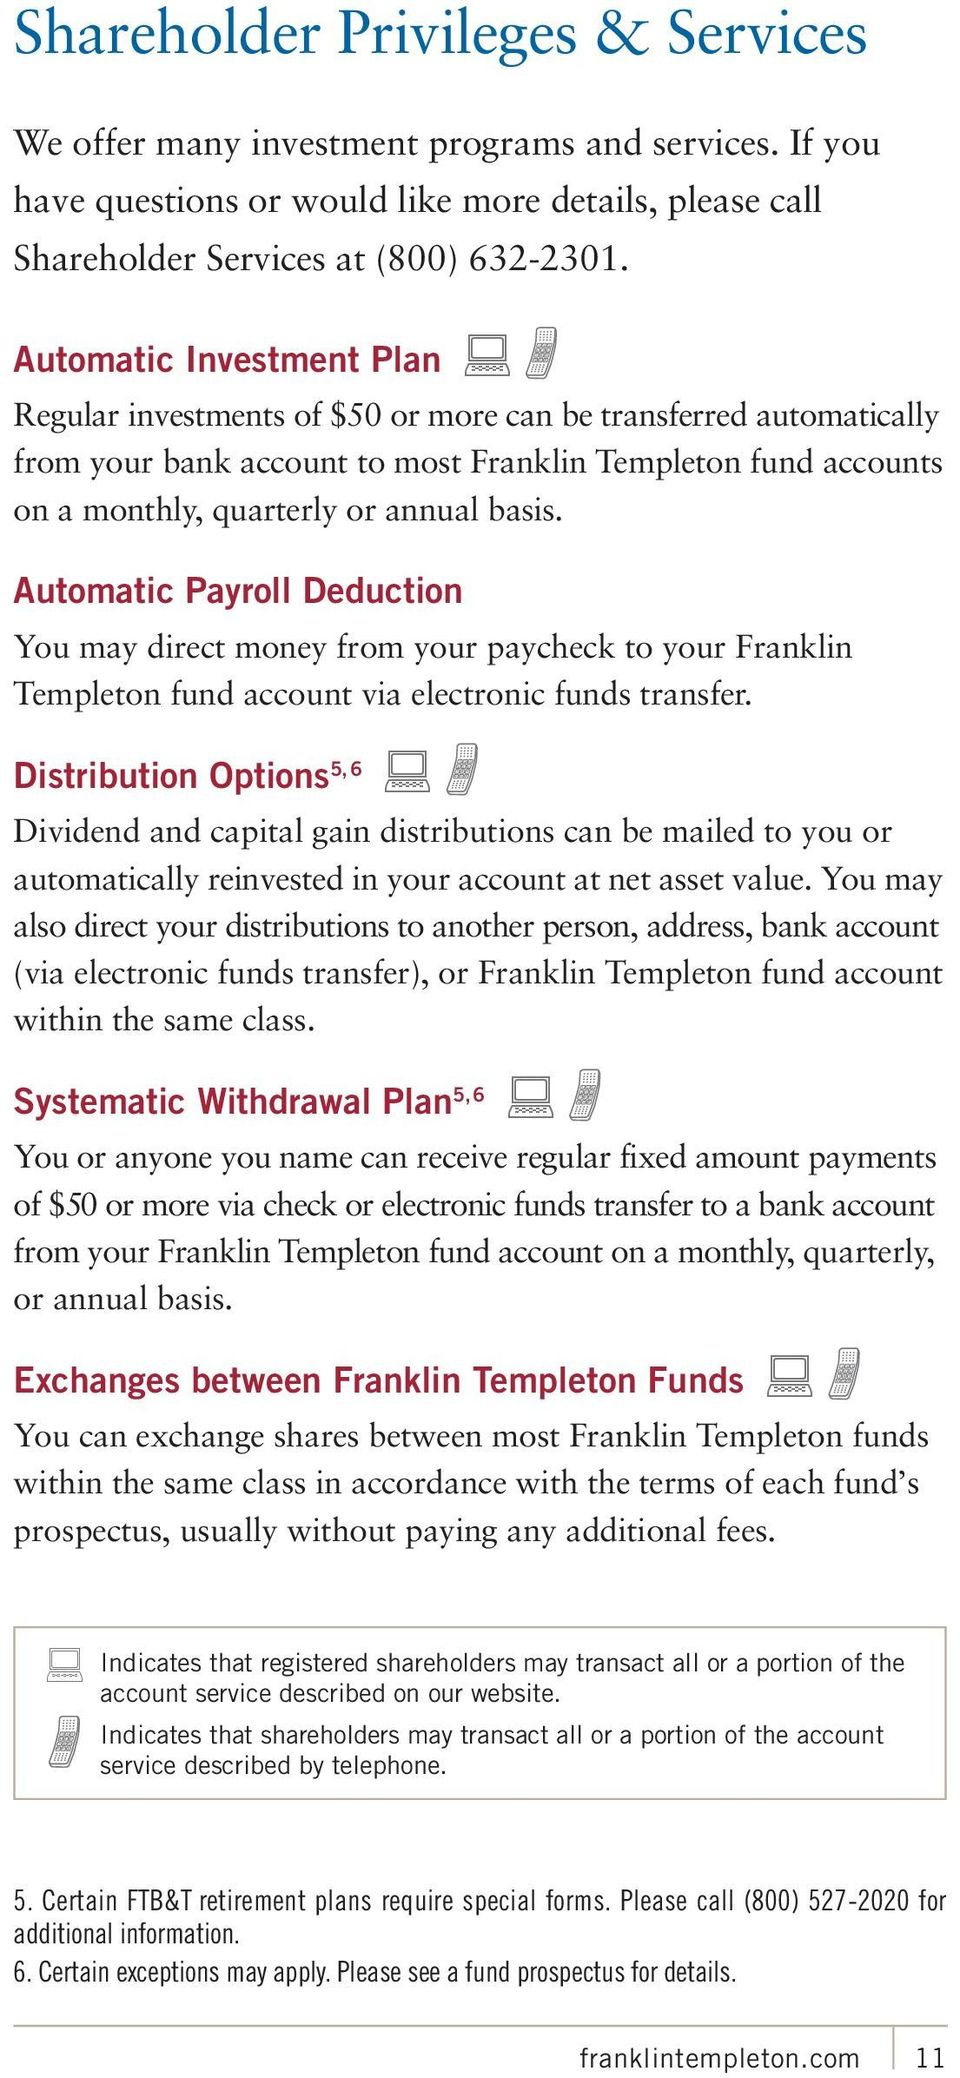 Automatic Investment Plan : Regular investments of $50 or more can be transferred automatically from your bank account to most Franklin Templeton fund accounts on a monthly, quarterly or annual basis.